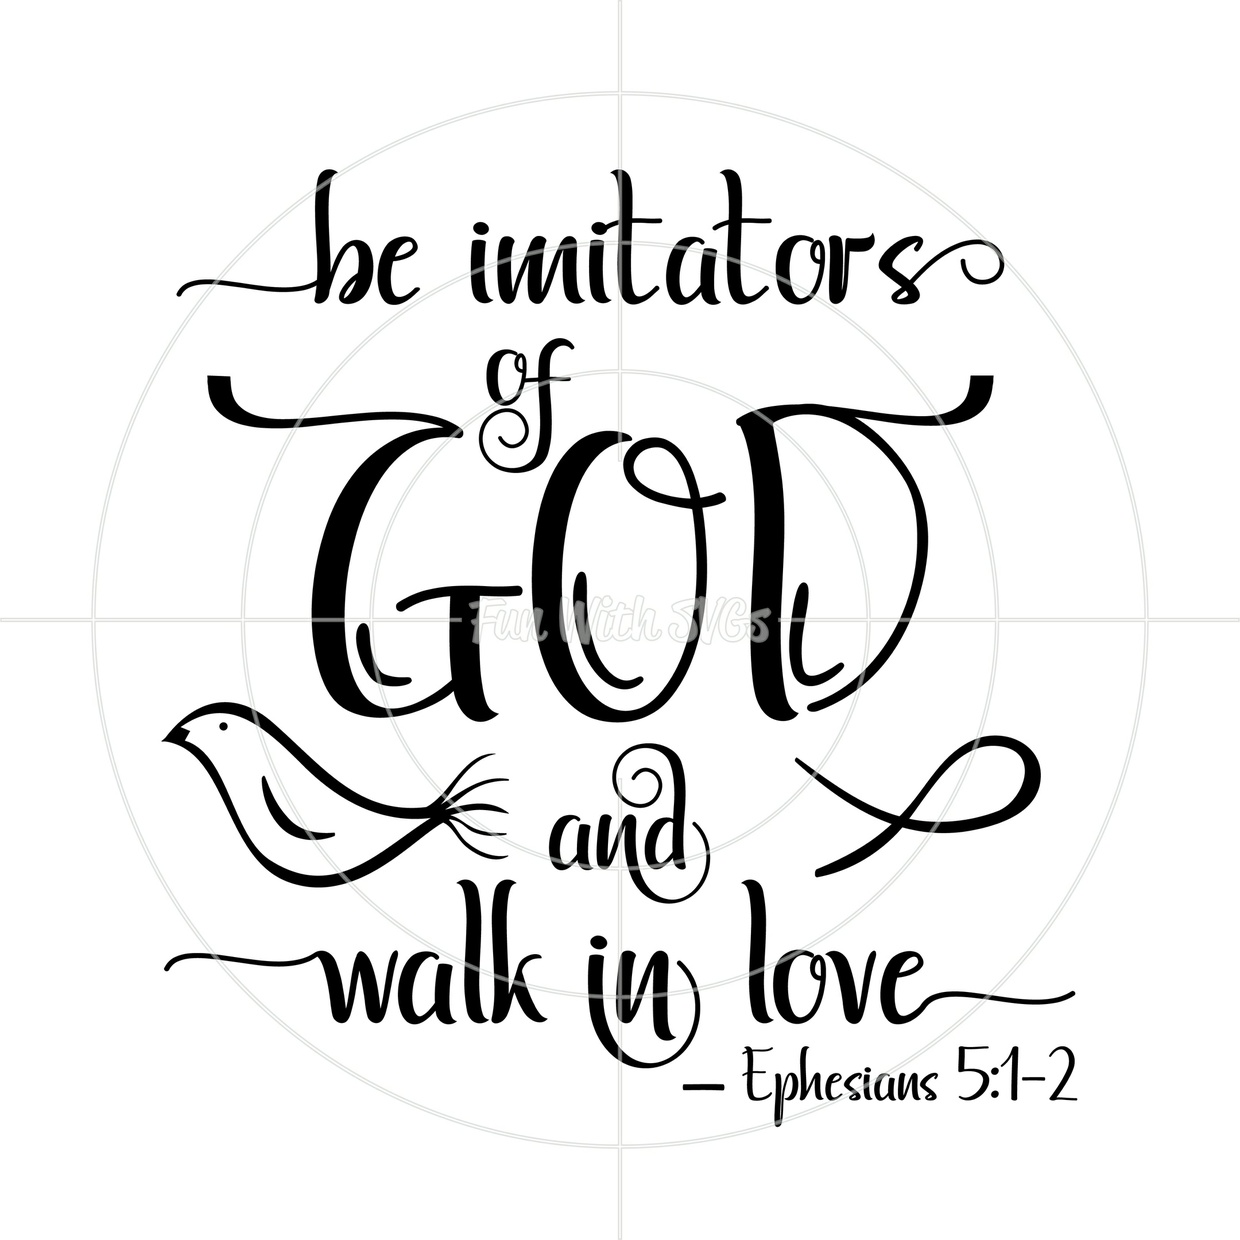 Walk In Love Ephesians 5:1-2 SVG File, Christian SVG, Be Imitators of God